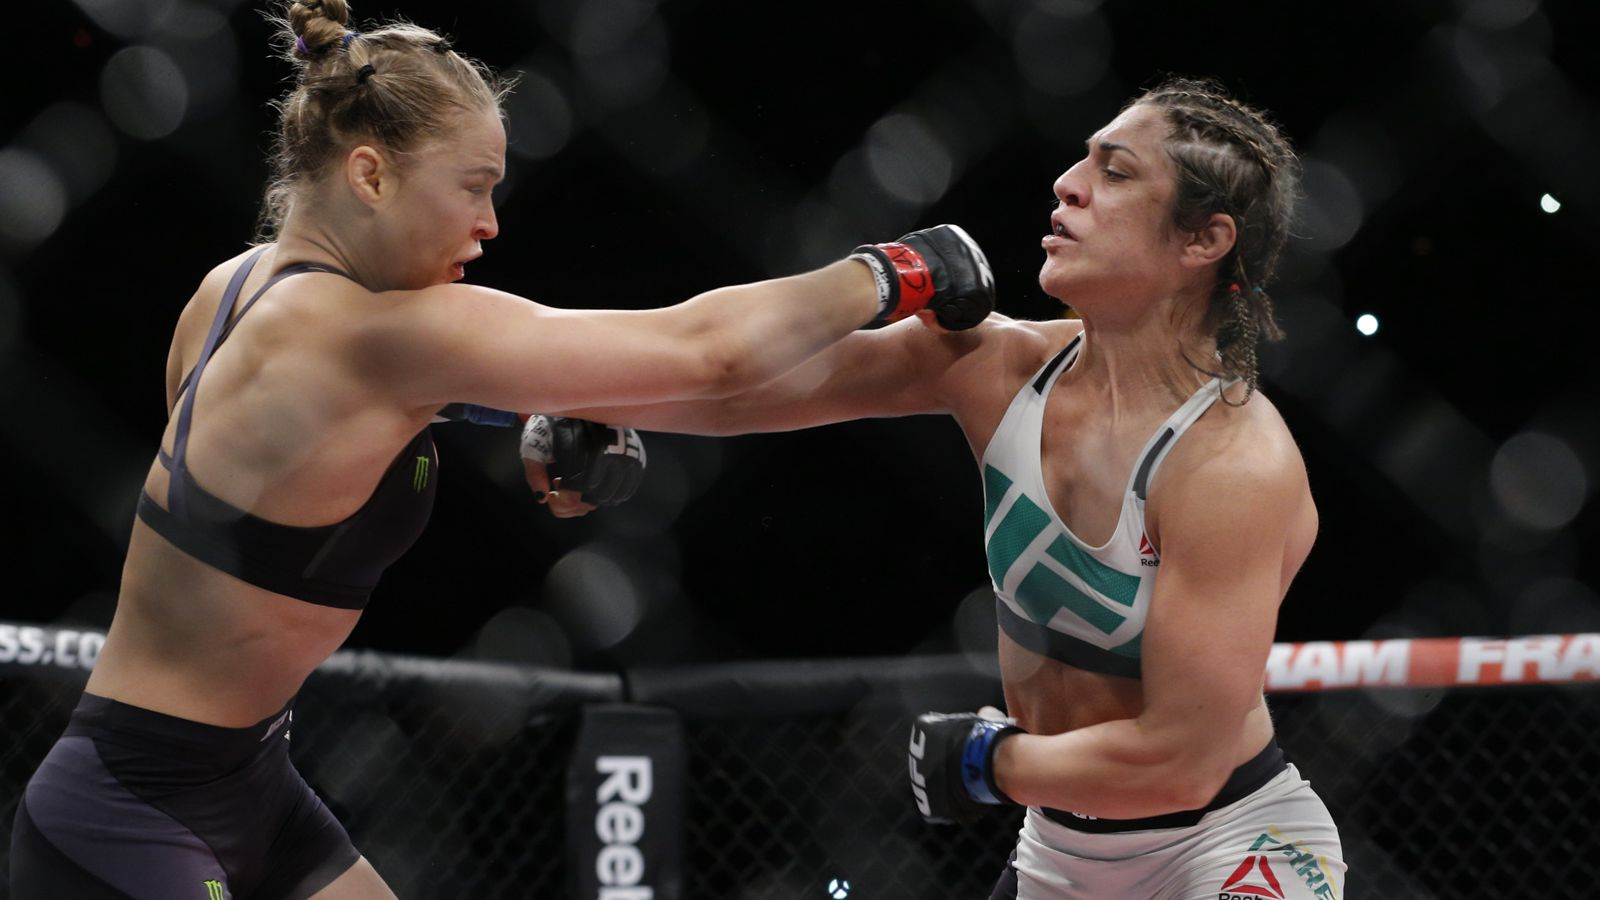 ufc 190 full card professional football betting lines